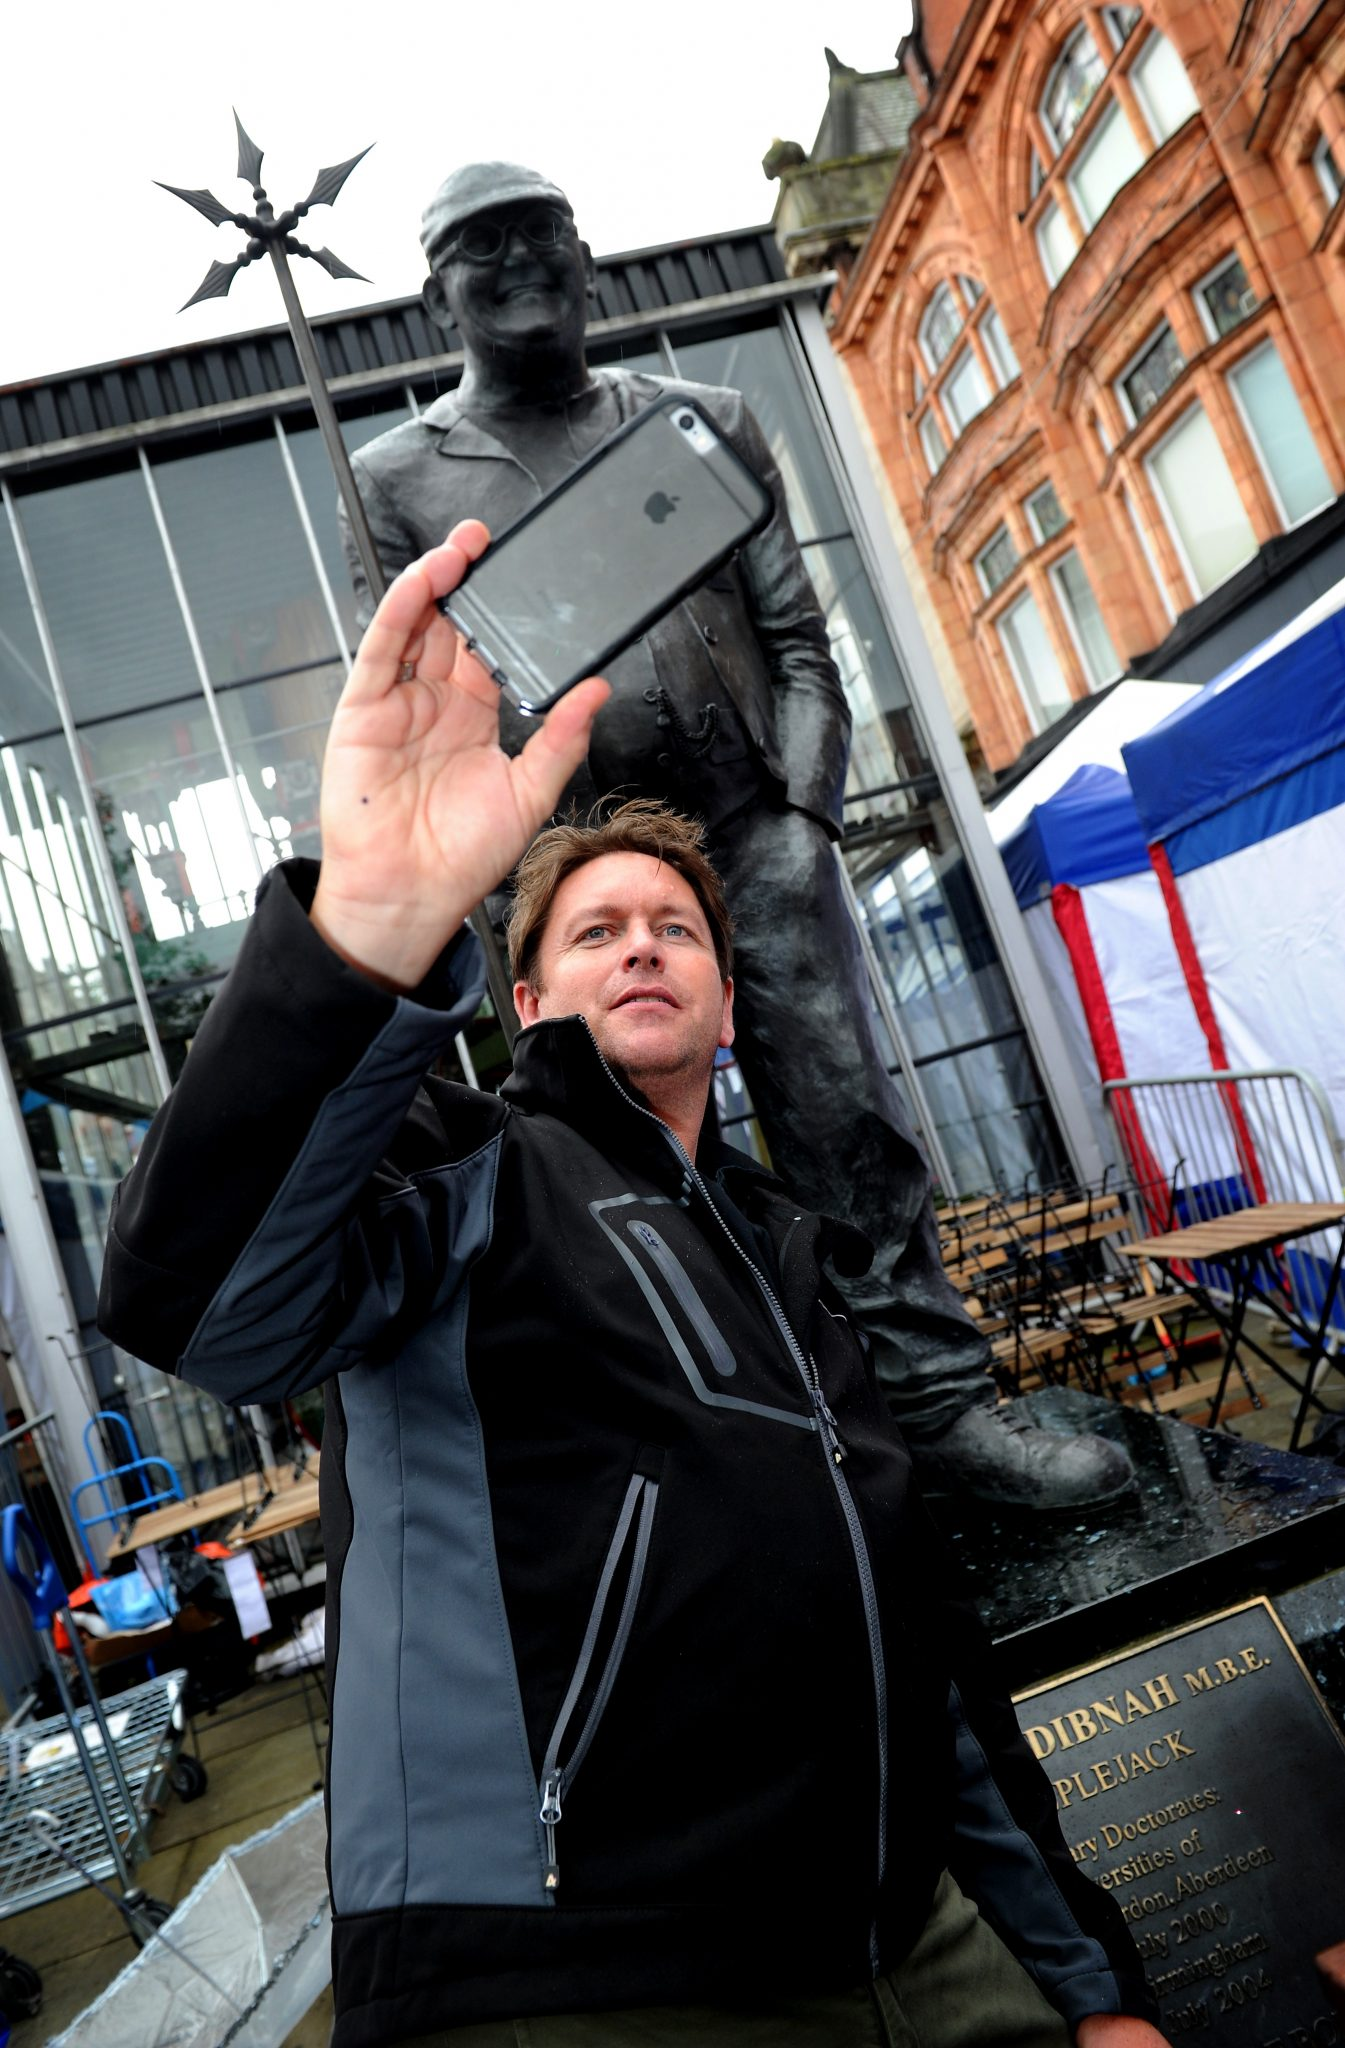 FEAST OF TOP STARS FOR BOLTON FOOD FESTIVAL